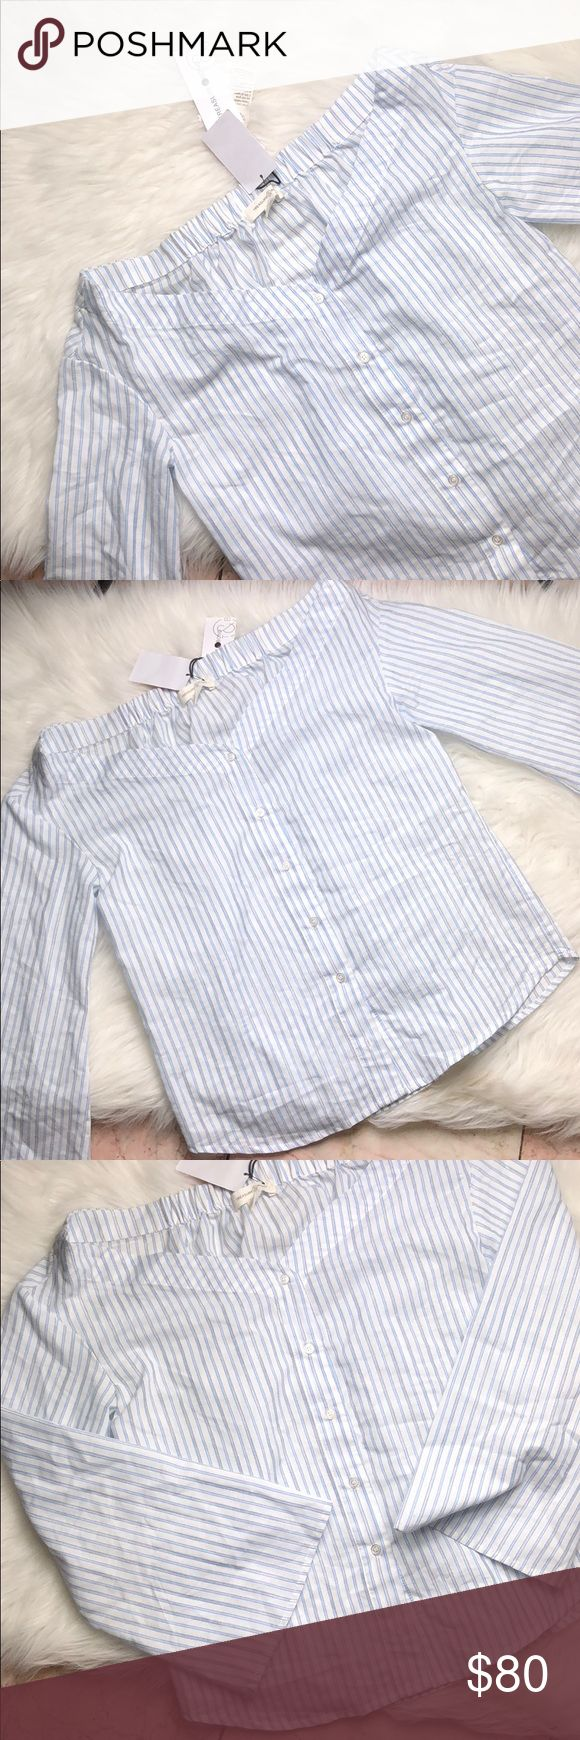 "TREASURE & BOND STRIPED WHITE BLUE BELL SLEEVE TOP Super cute and brand new!  Want to save more?  Bundle and save on shipping! Measurements:  Length: 22"" Underarms: 18.5"" Shoulder width: 16.5"" Arm width: 7.5"" Inseam:  Waist:  * smoke free home * Reasonable offers only please * All items are recorded in condition listed prior to shipping  * follow me on IG for exclusive sale offers @theposhpassport_ Treasure & Bond Tops Tees - Long Sleeve"